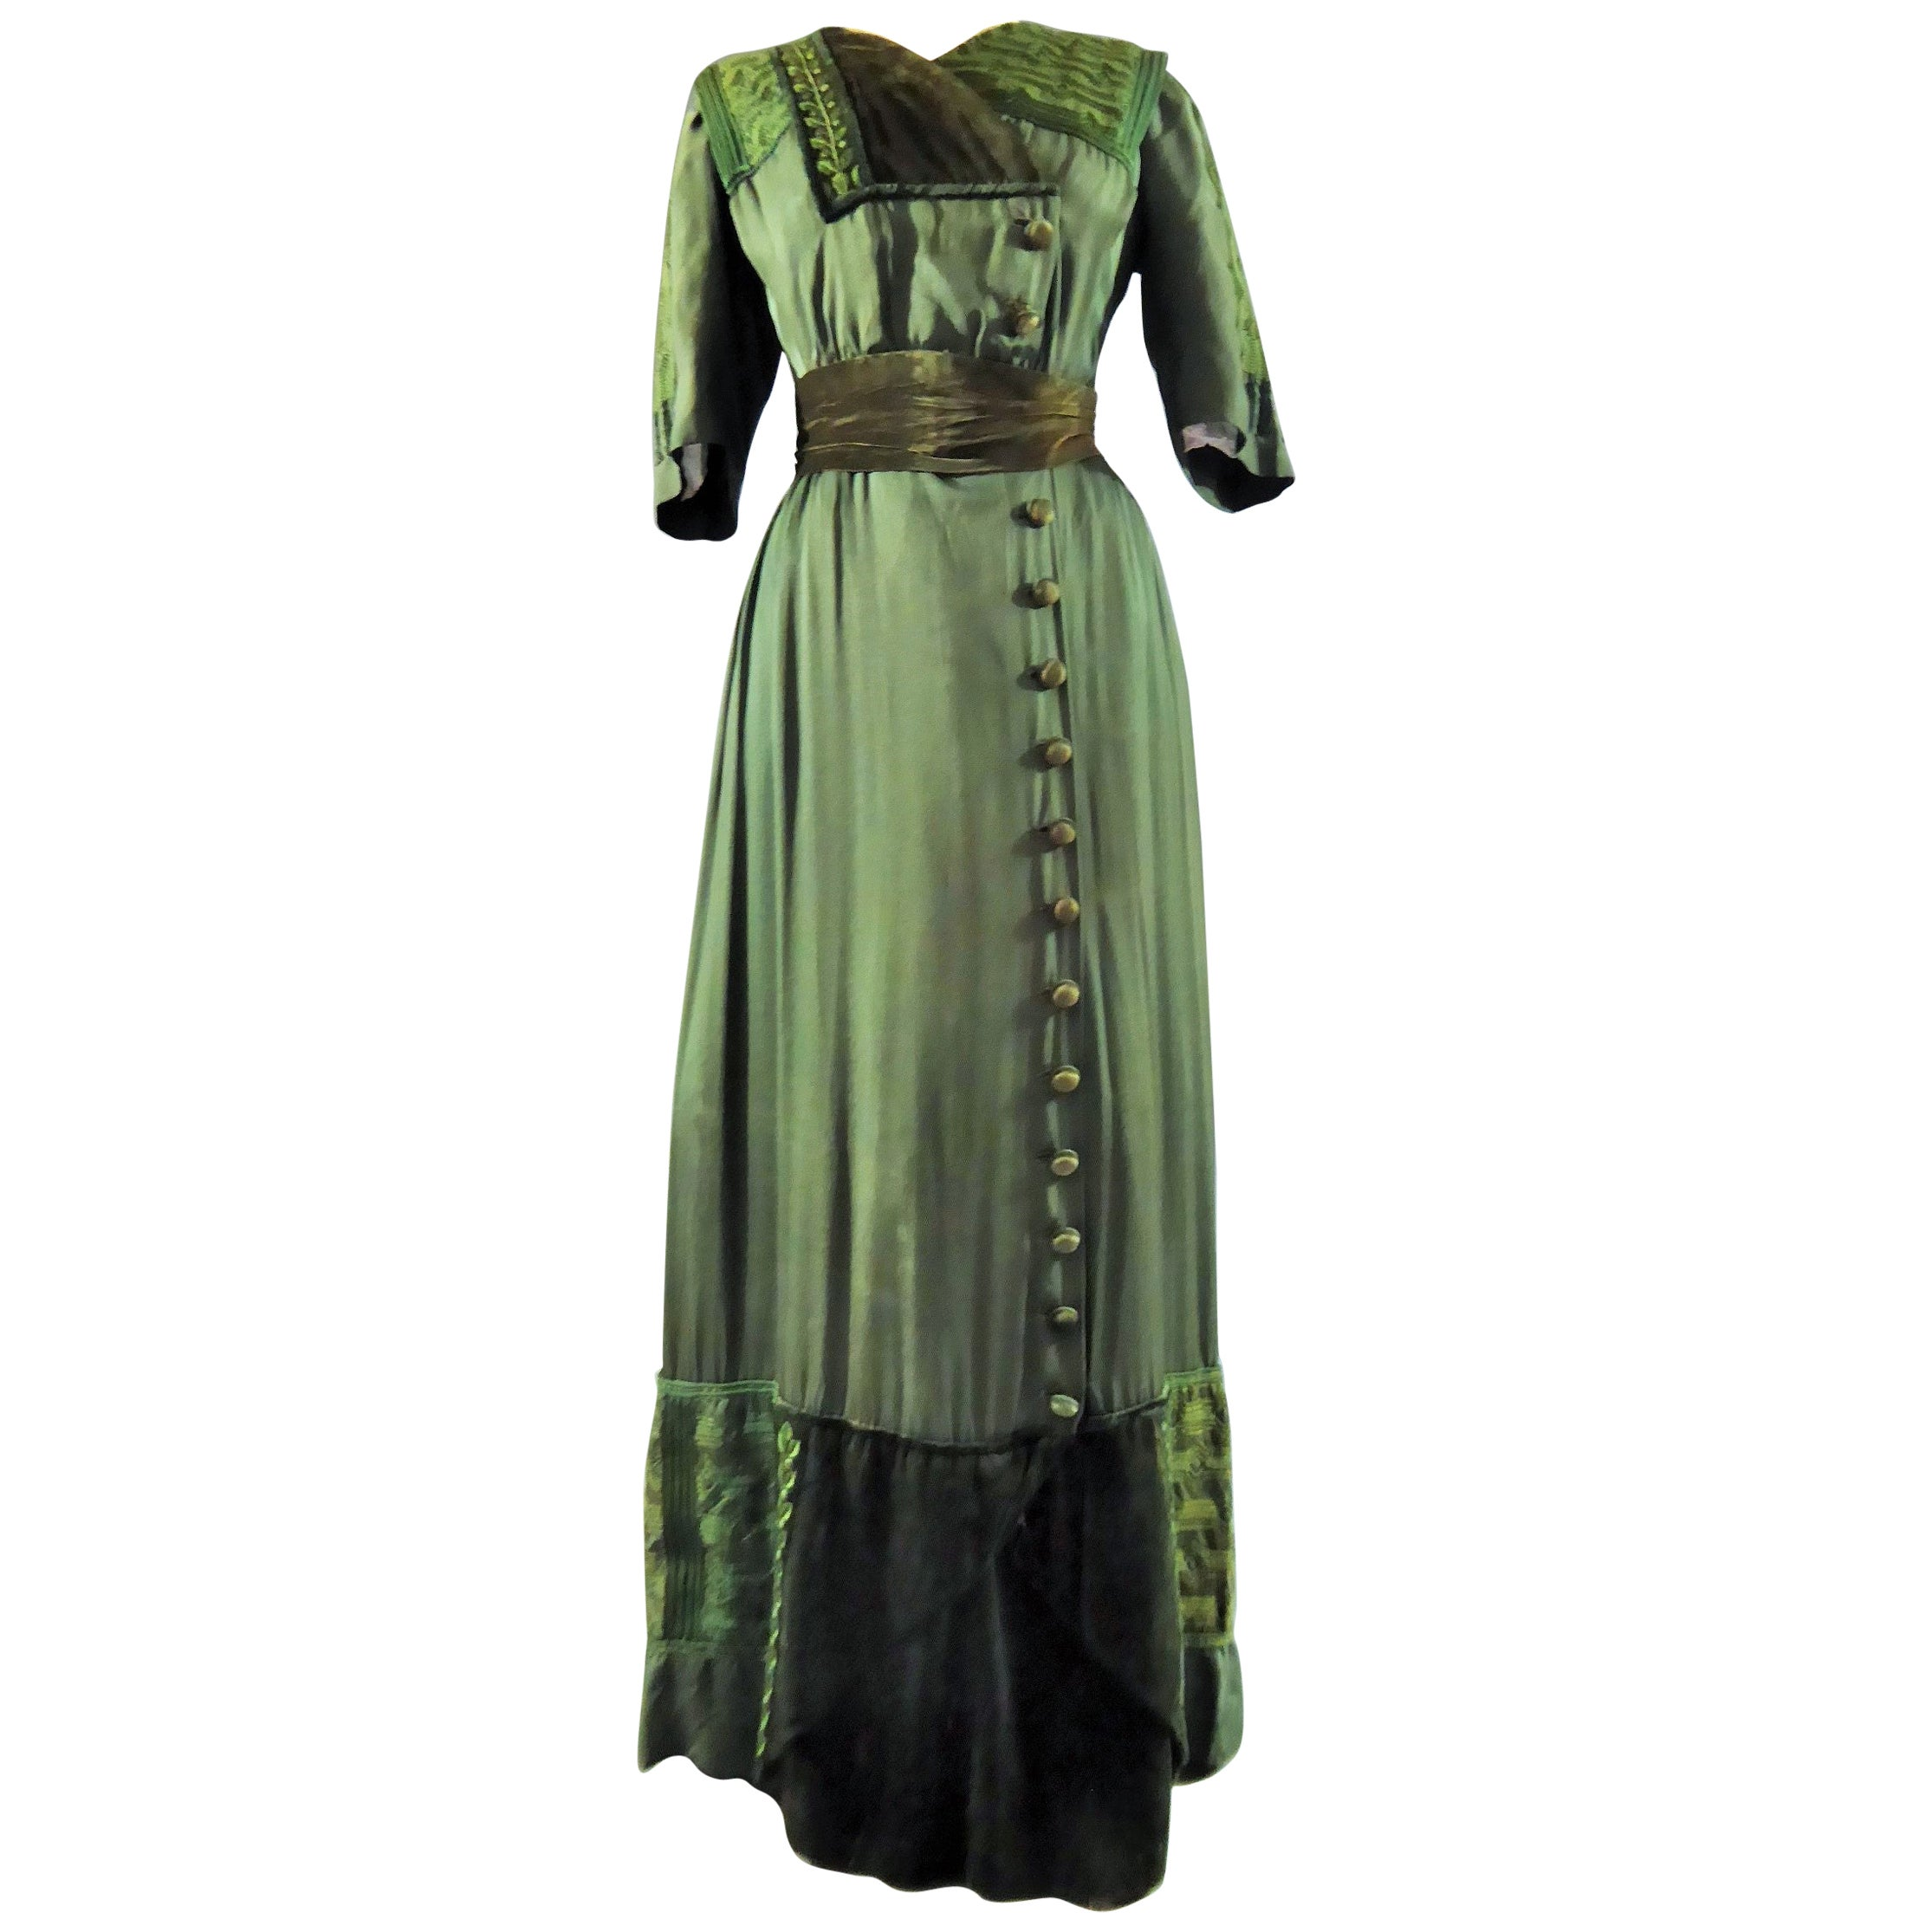 A Jean-Philippe Worth French Couture Edwardian Gown Circa 1905